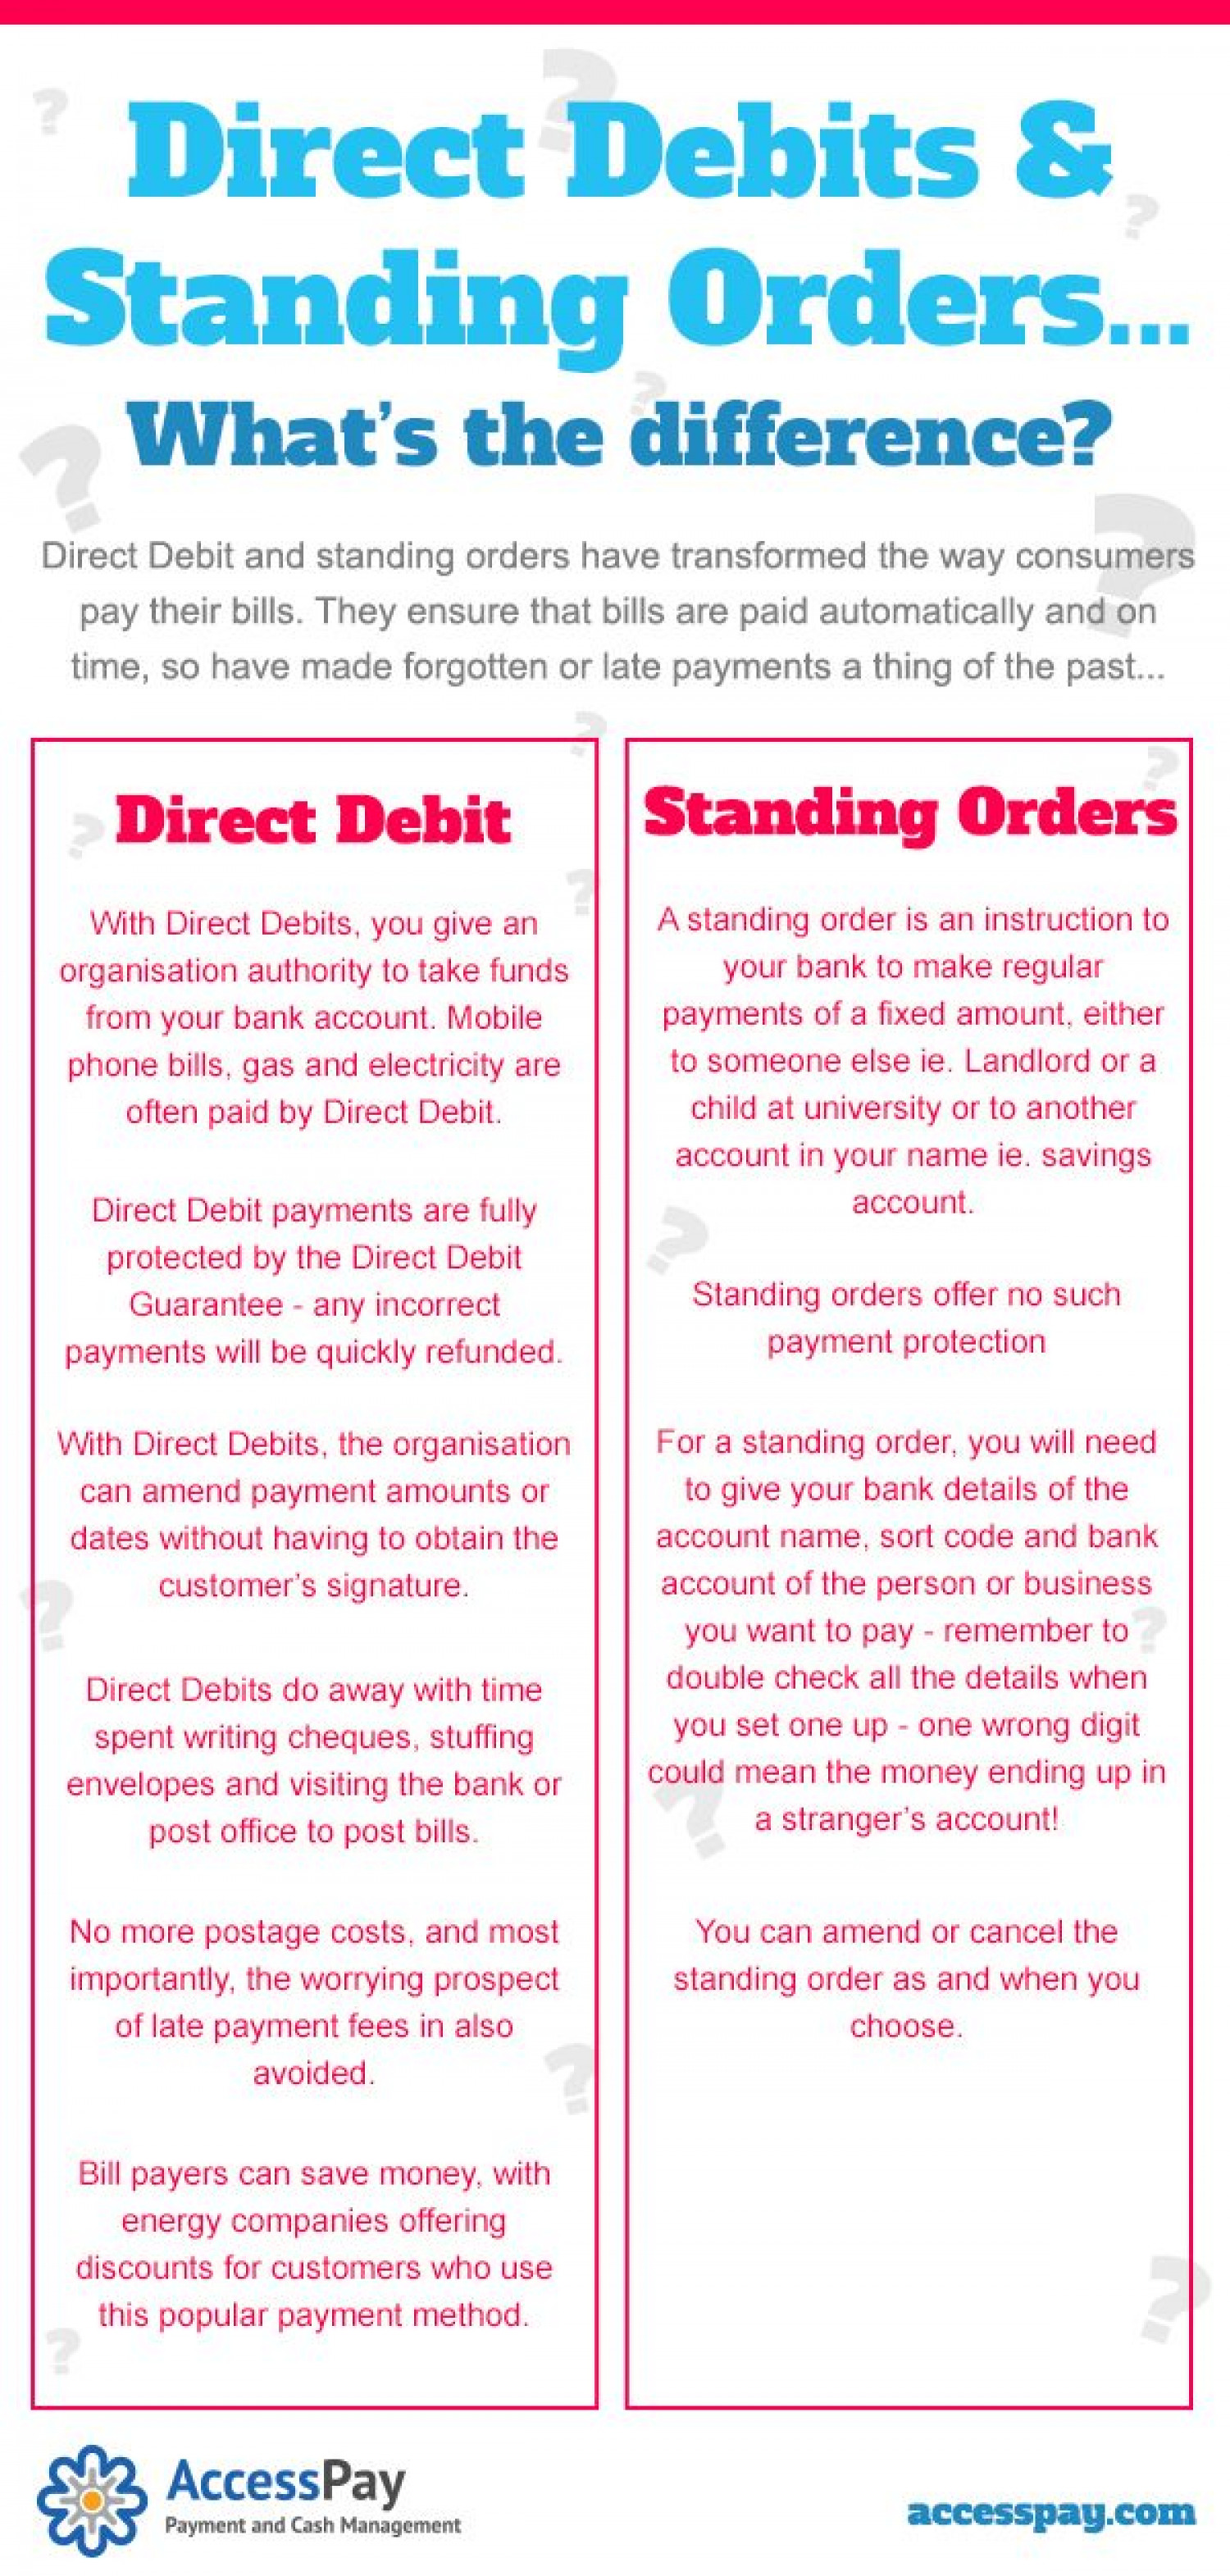 Direct Debits and Standing Order - Differences Infographic